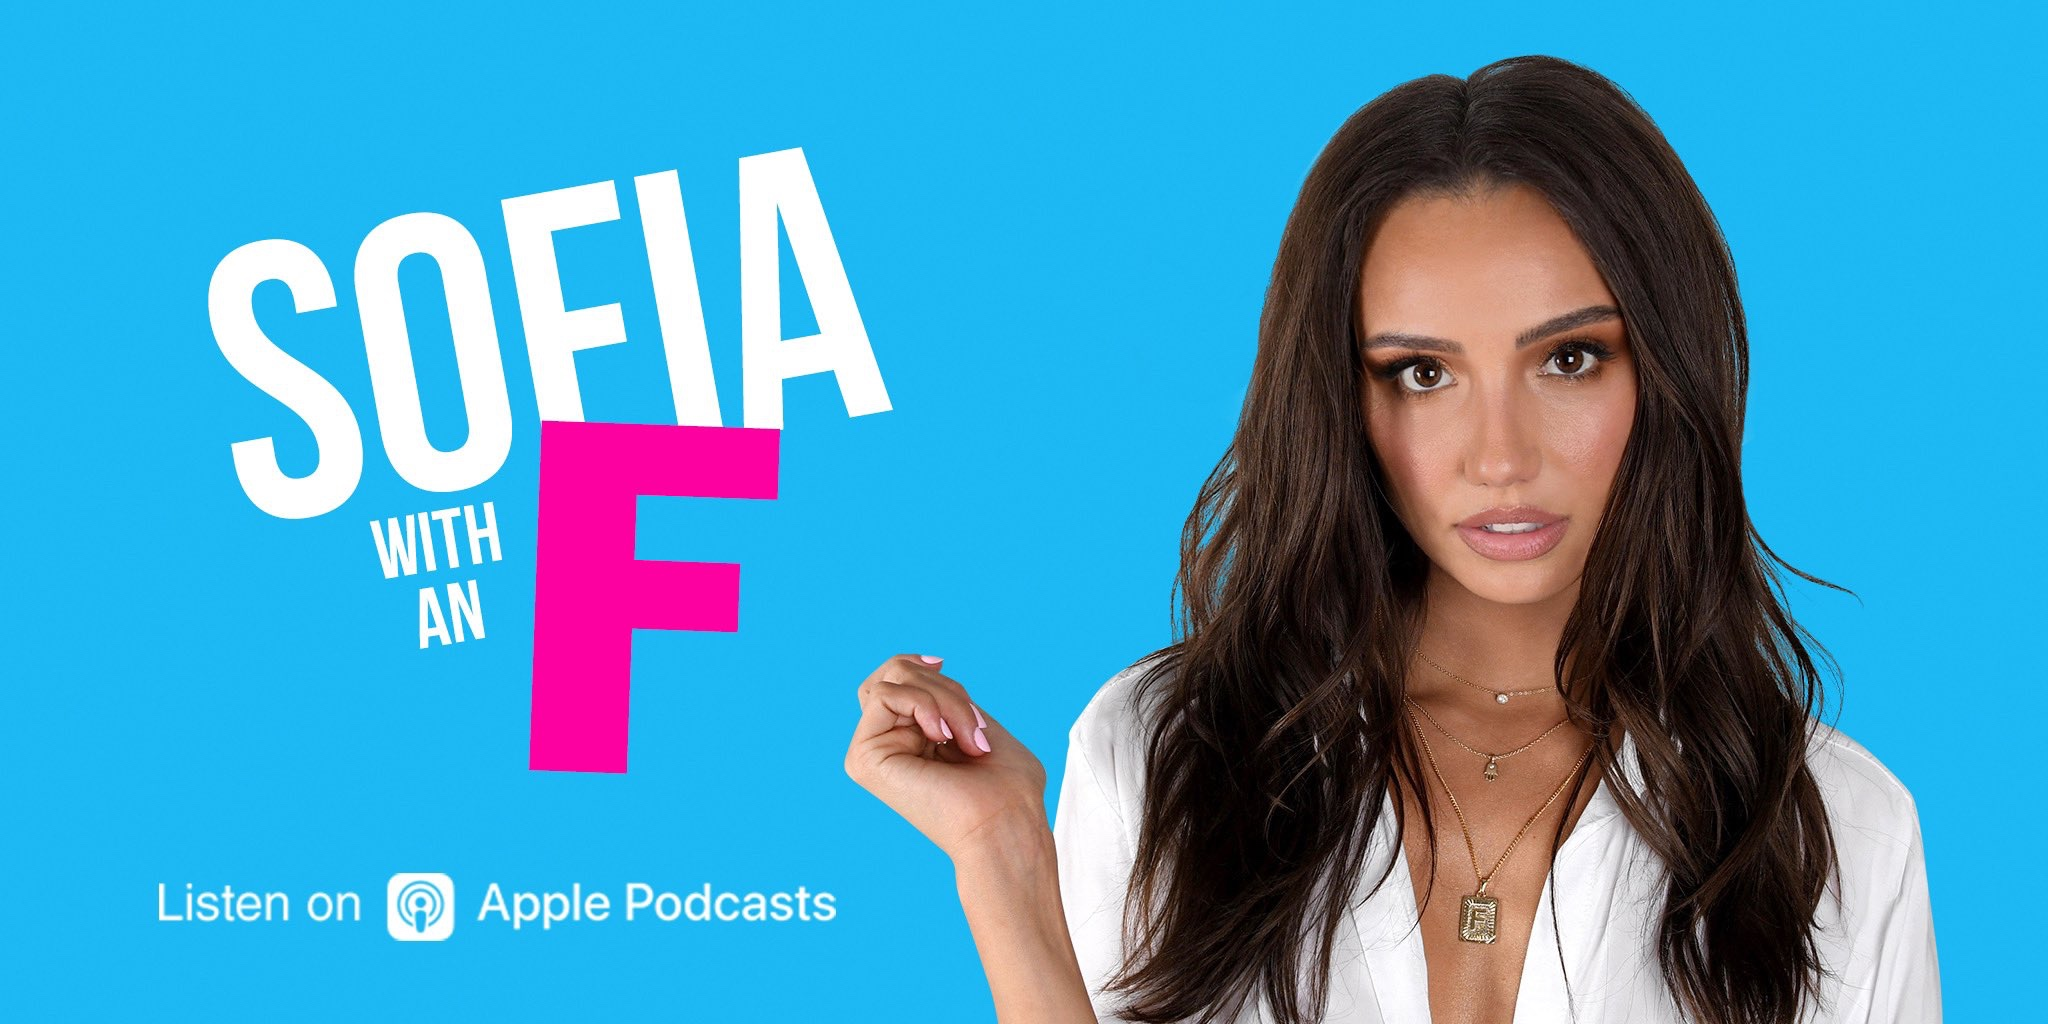 SOFIA IS BACK BITCHES!!!